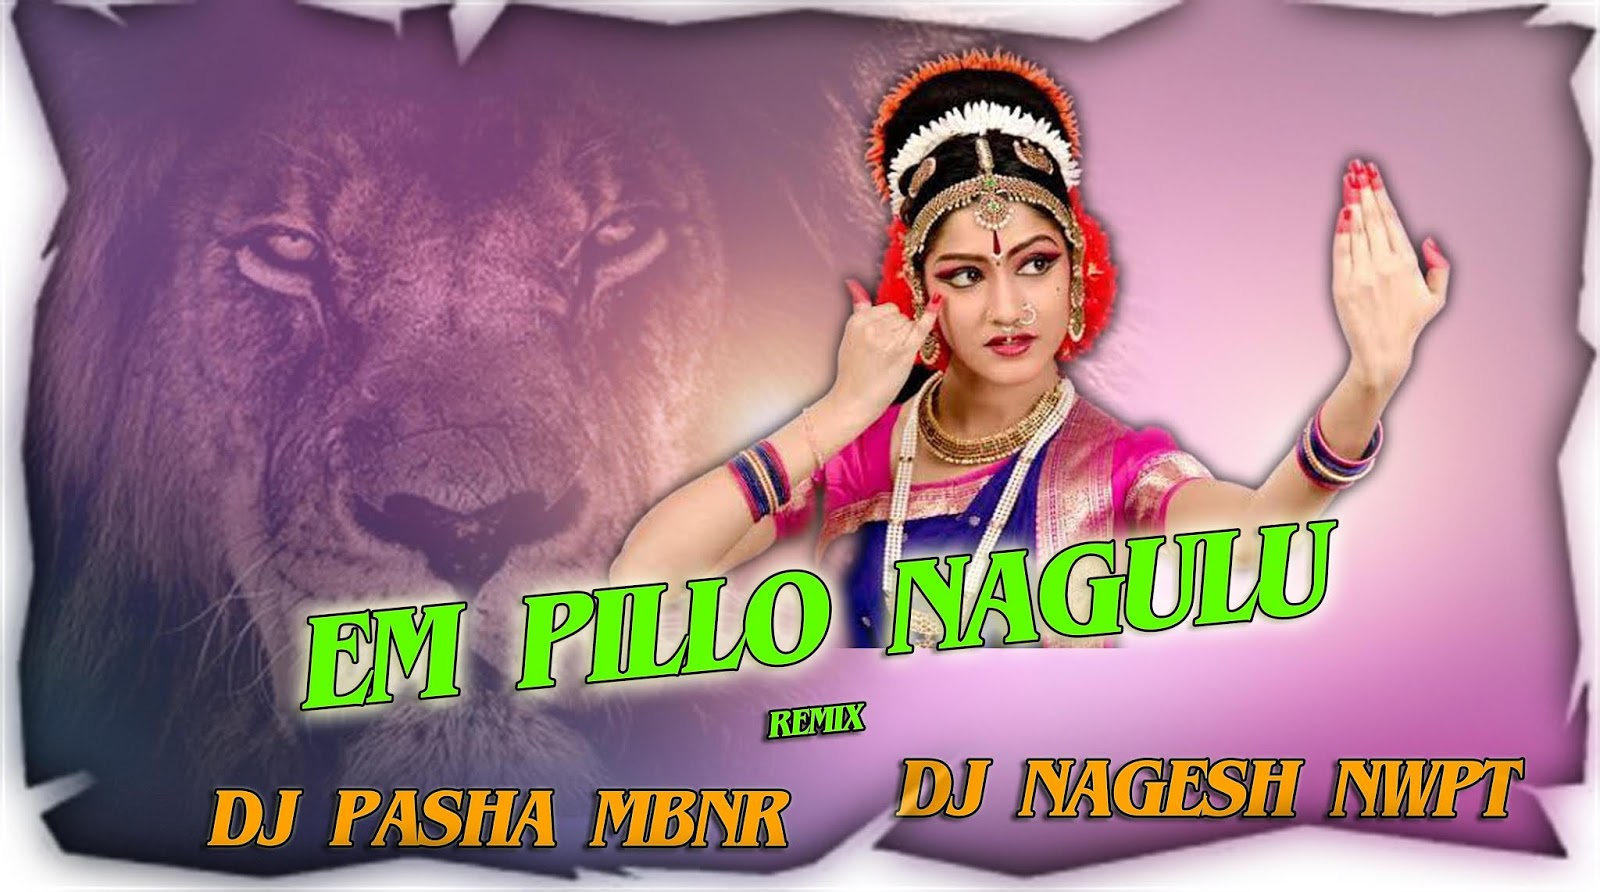 Em Pillo Nagulo Song Remix By Dj Pasha Mbnr & Dj Nagesh Nawapet(www.newdjsworld.in)